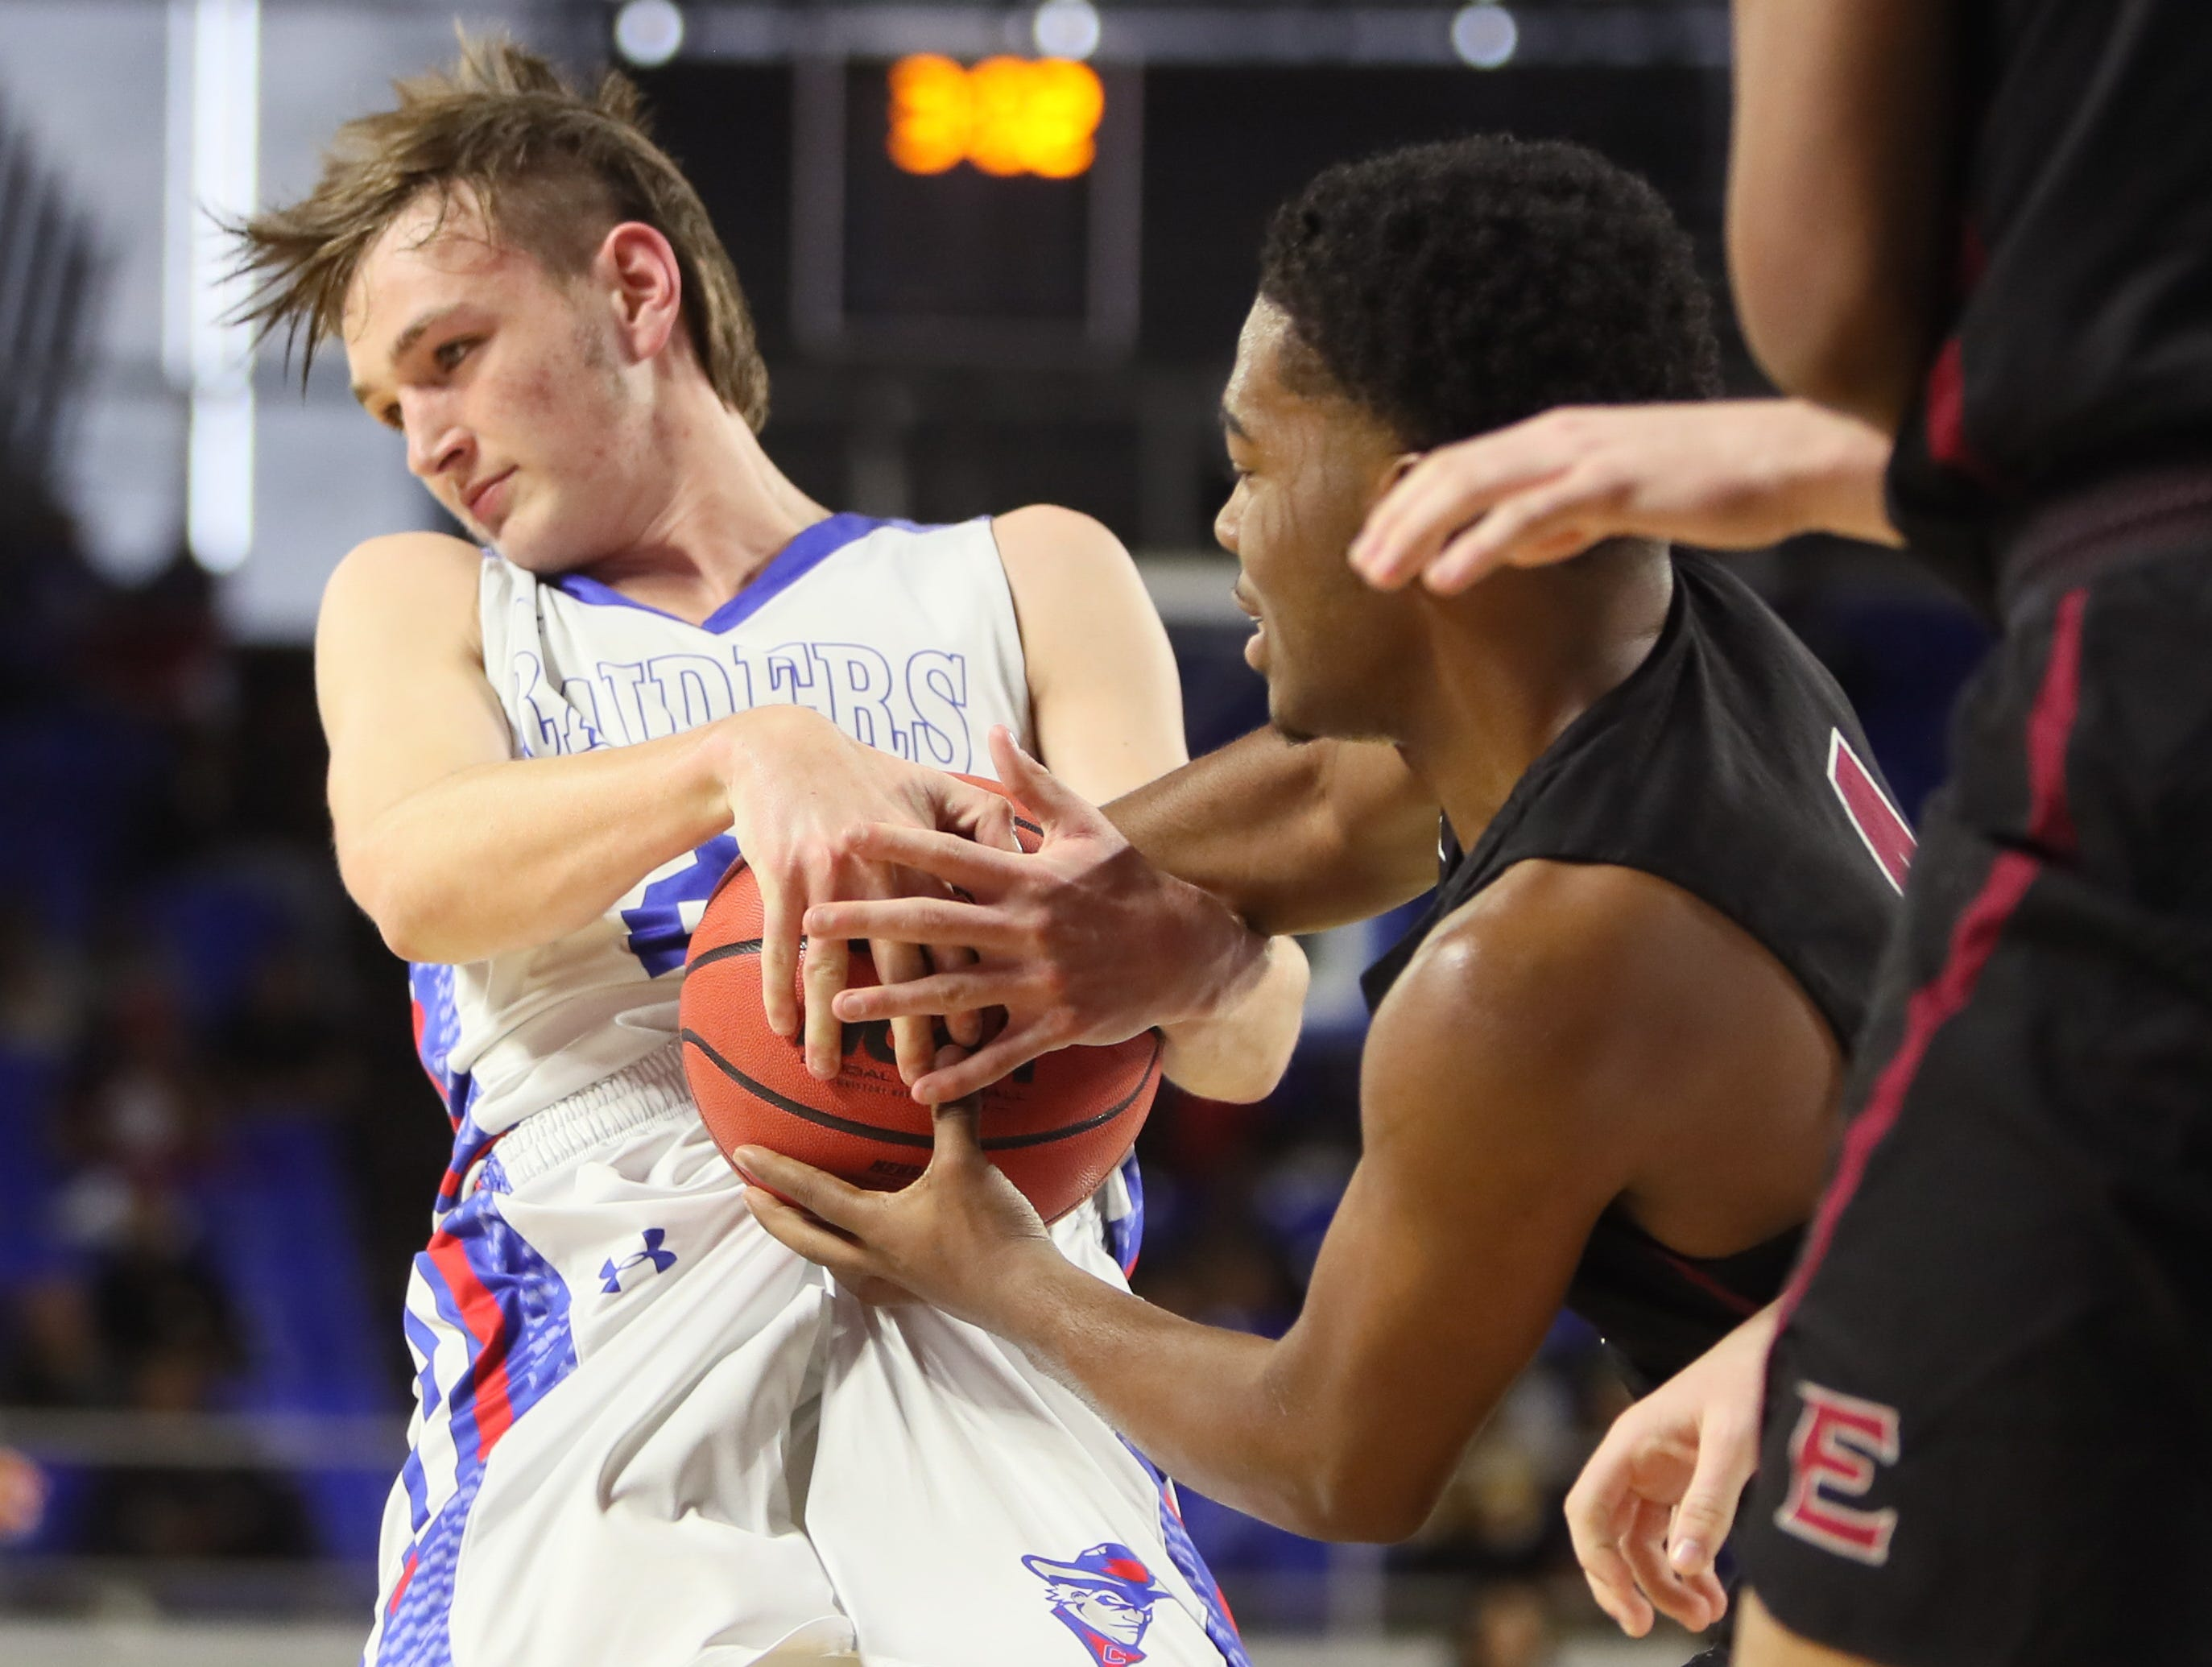 Memphis East's Isaiah Cathey battles for the ball with Cleveland's Klay McGowan during the TSSAA Division I basketball state tournament at the Murphy Center in Murfreesboro, Tenn. on Thursday, March 14, 2019.